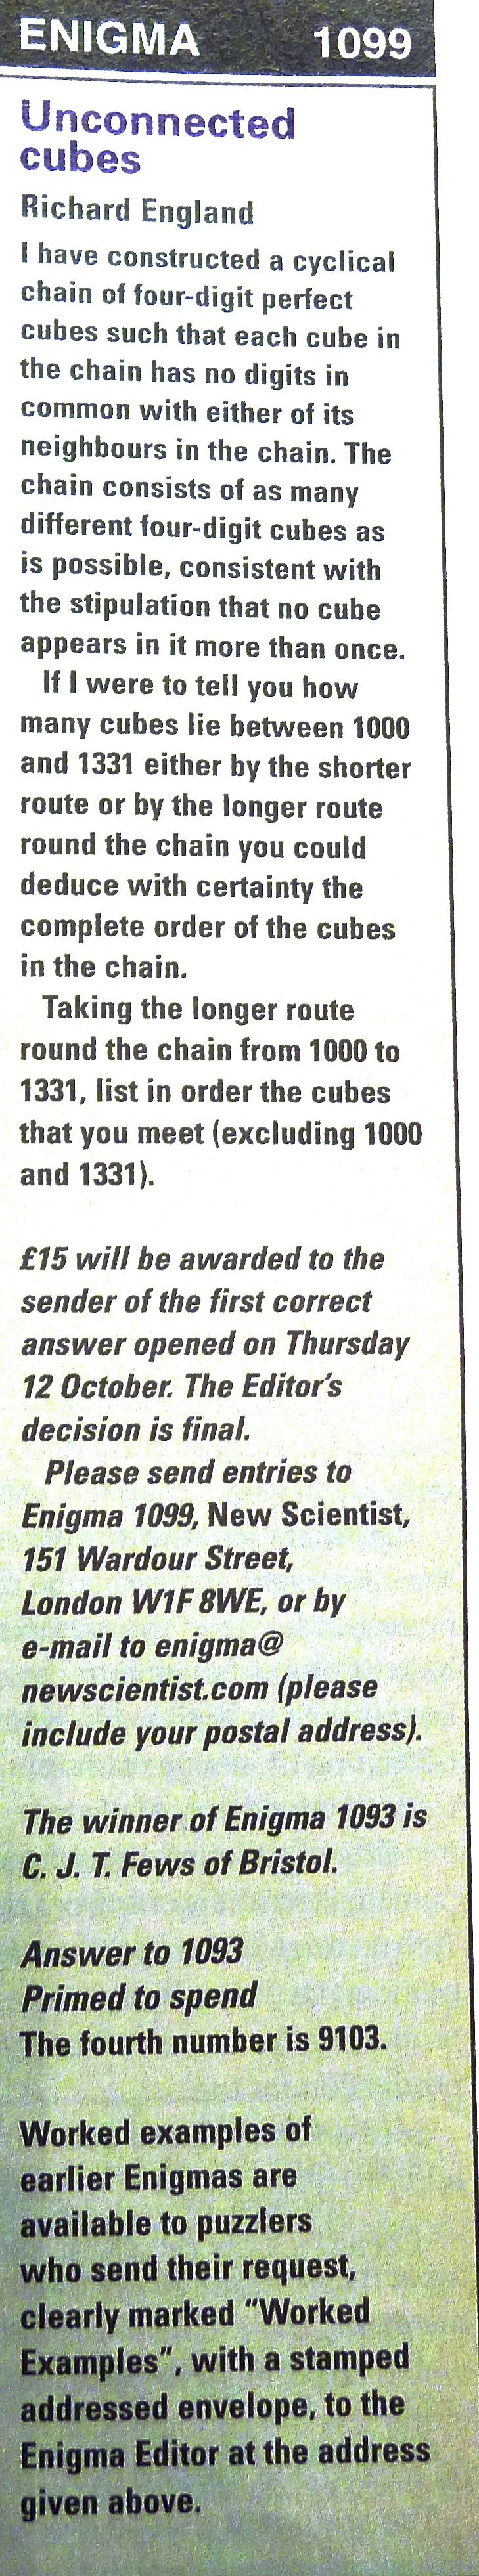 enigmatic code programming enigma puzzles page 8